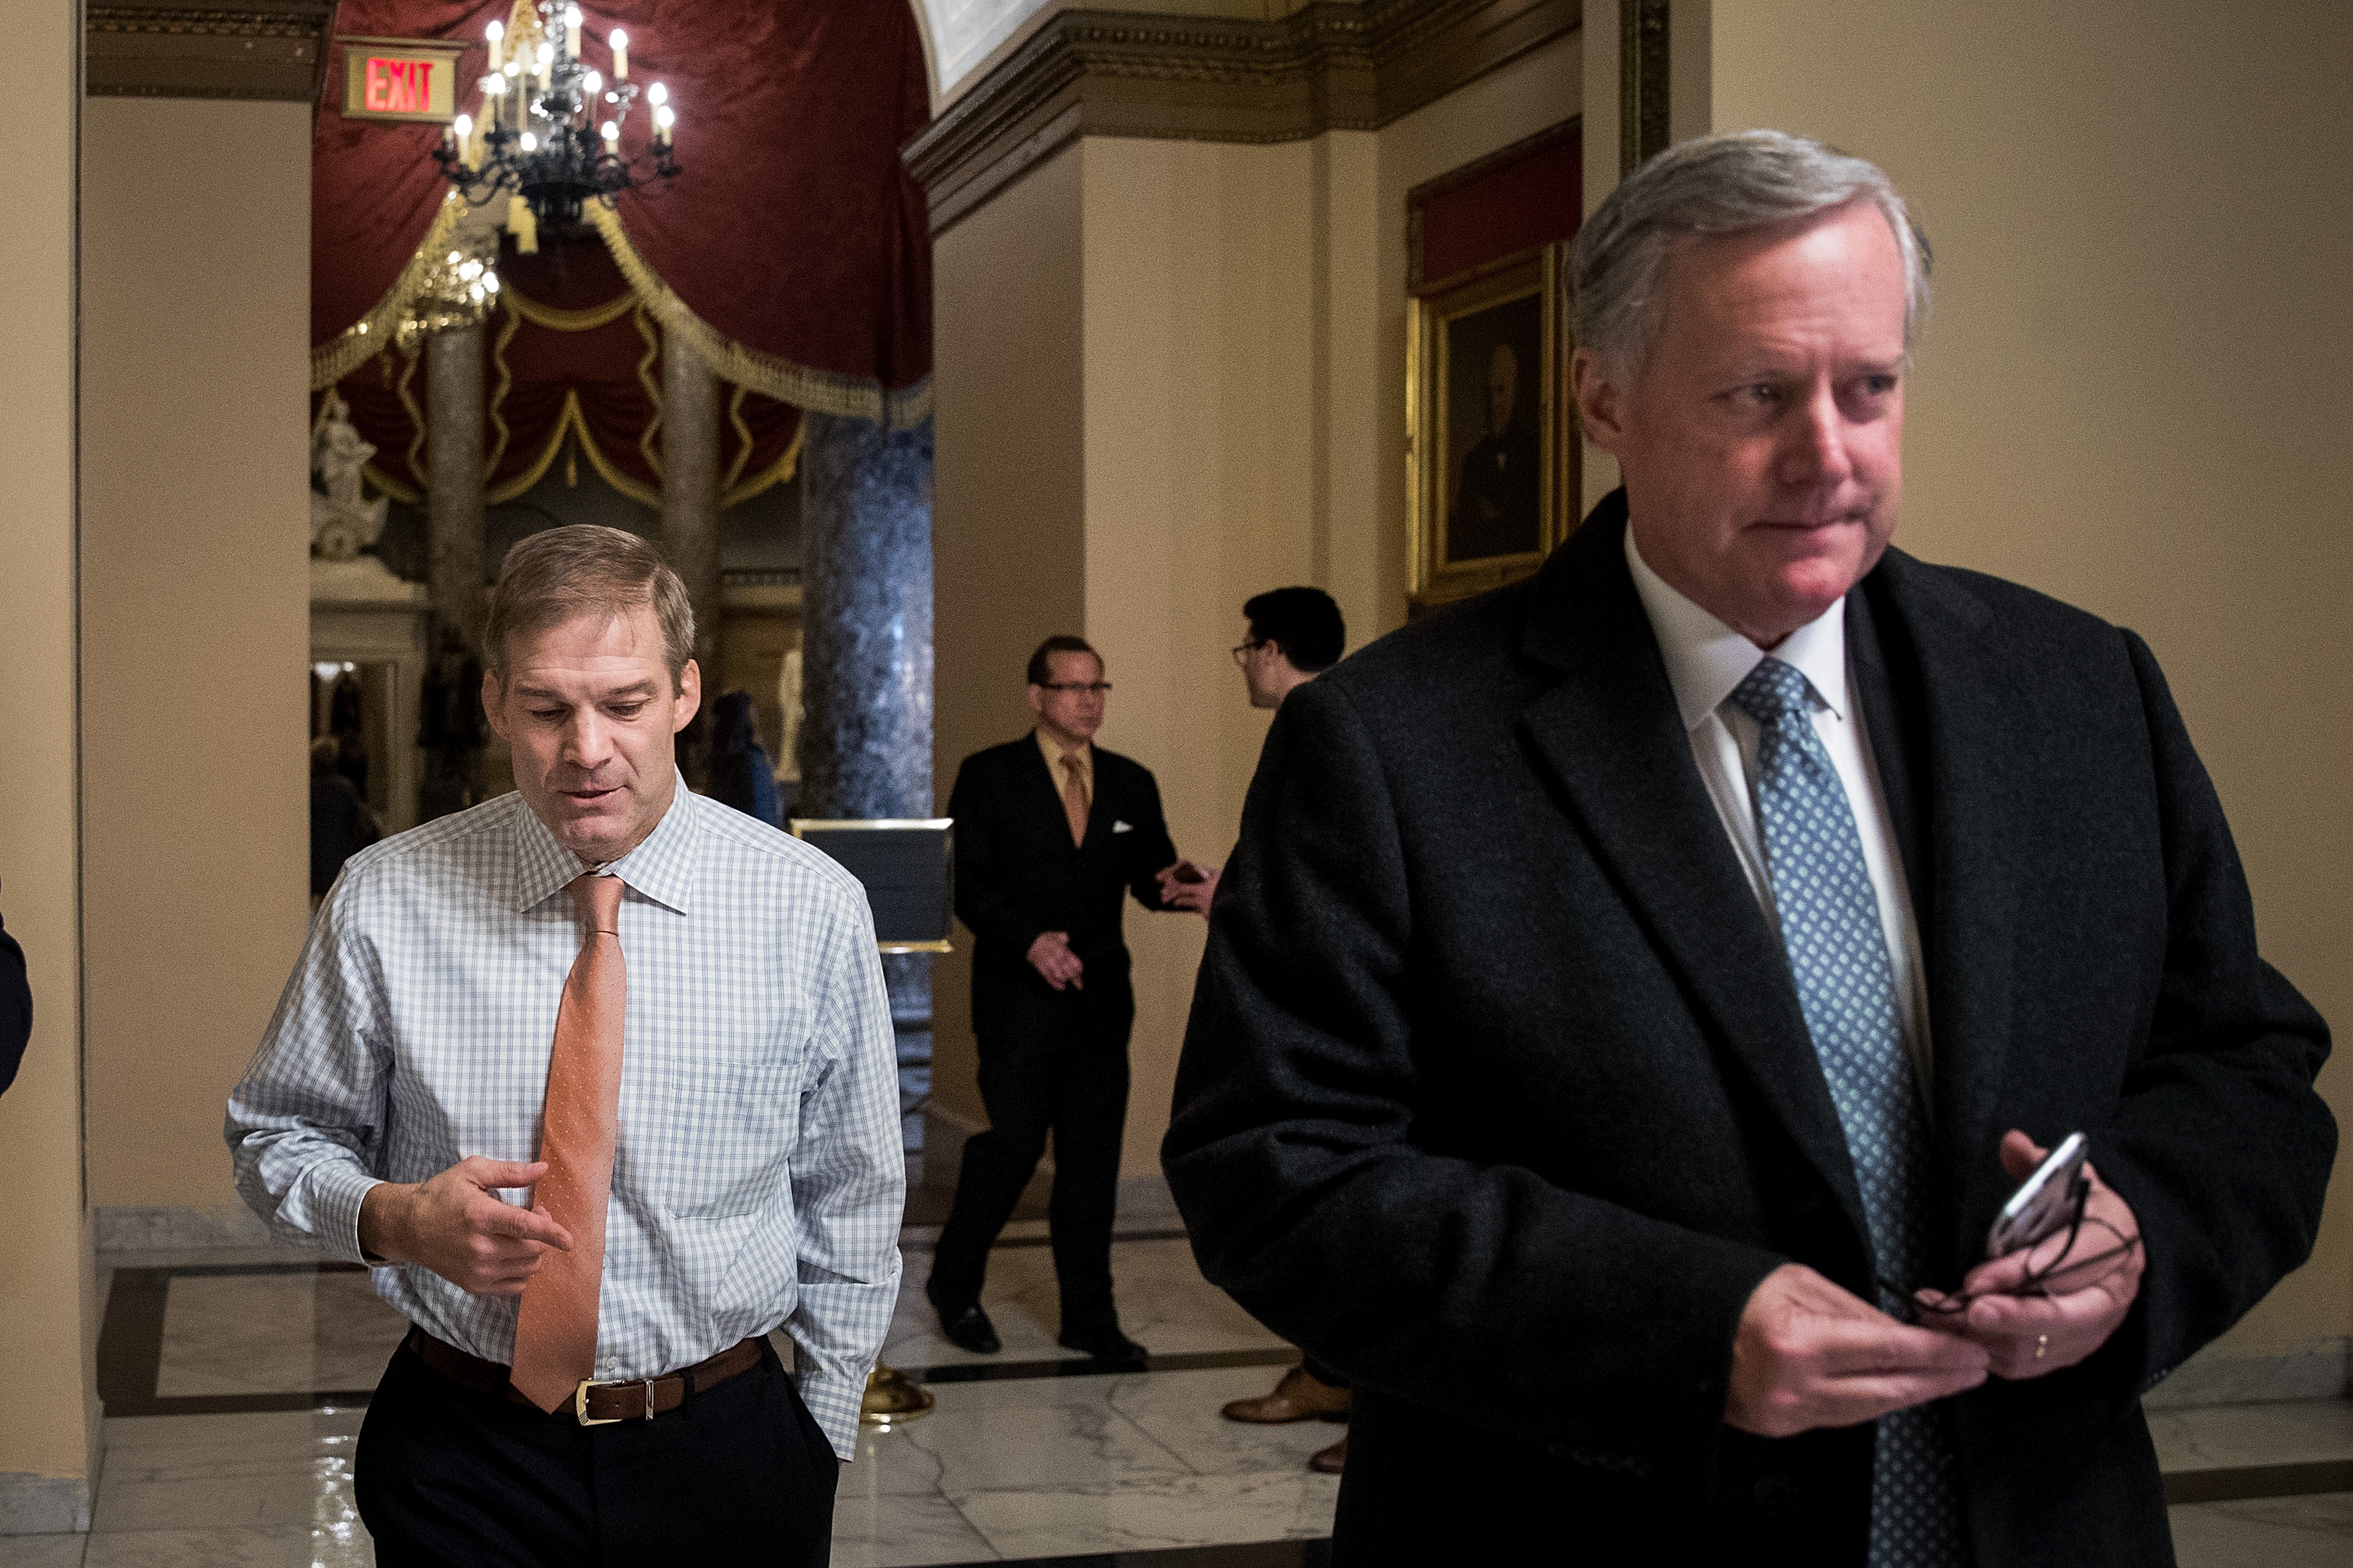 Rep. Jim Jordan (R-OH) walks with Rep. Mark Meadows (R-NC) on Capitol Hill.